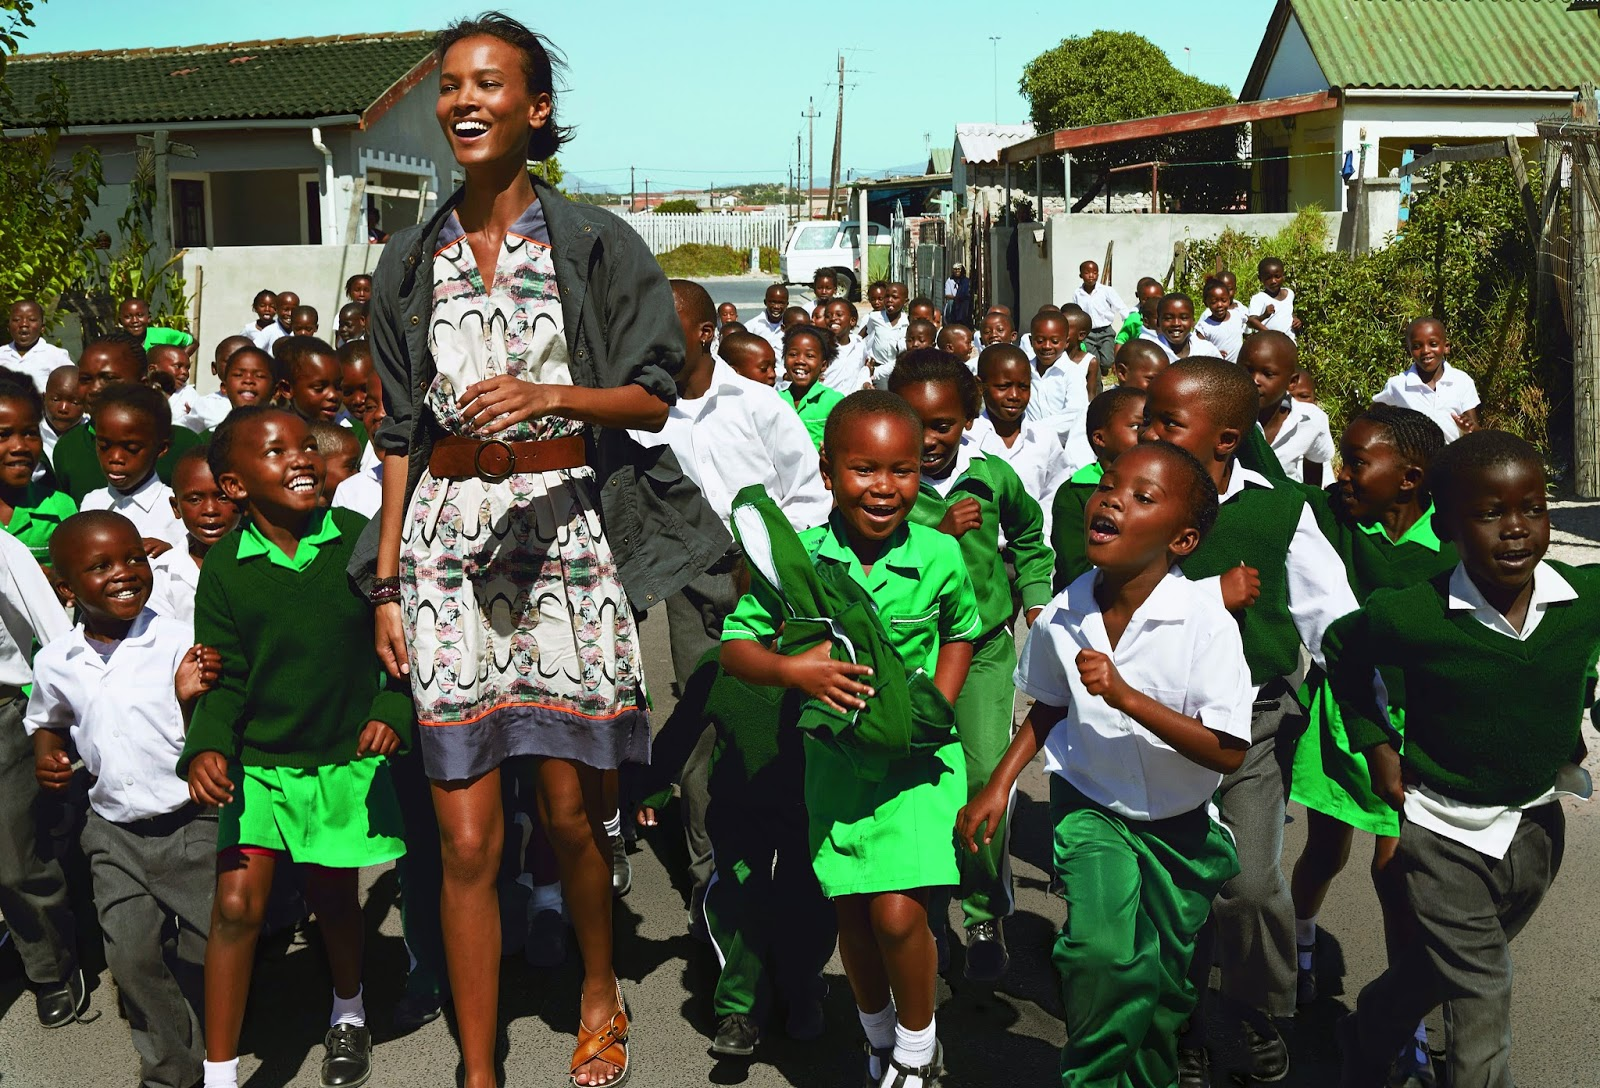 Liya Kebede as she visited South Africa to learn more about Born Free.